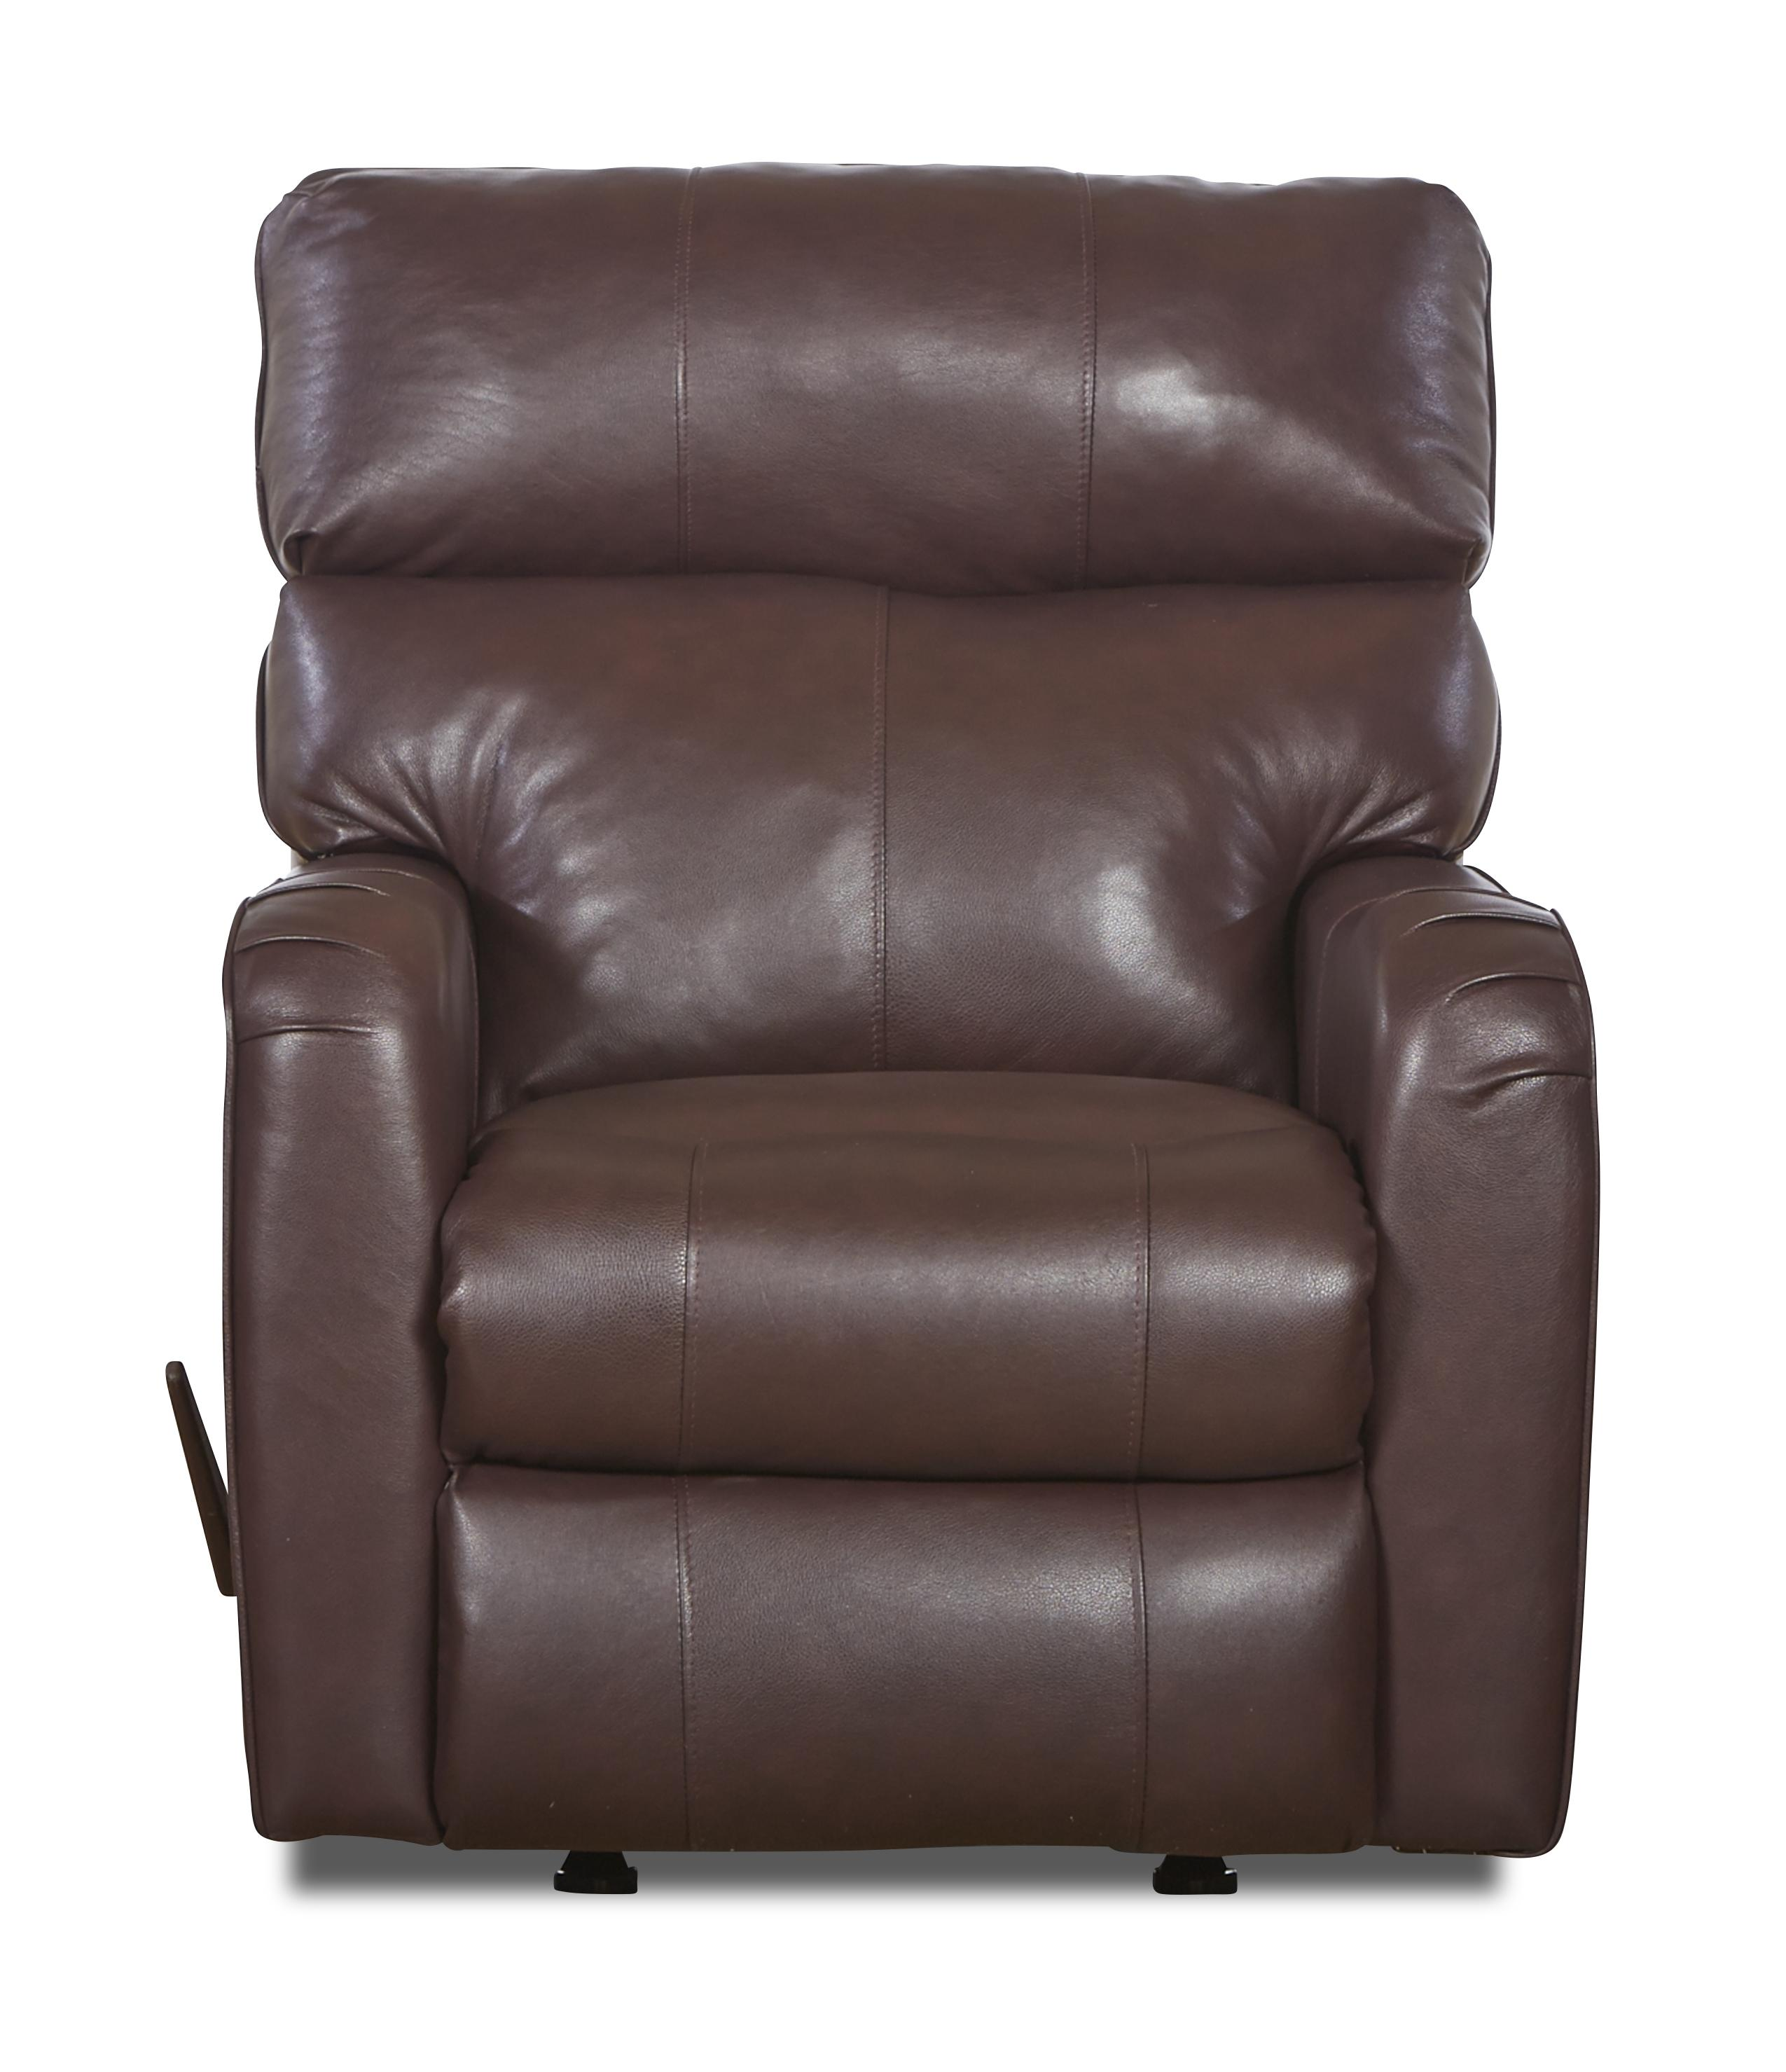 Klaussner Axis 25803 Transitional Swivel Rocking Reclining Chair - Item Number: LV25803H SRRC